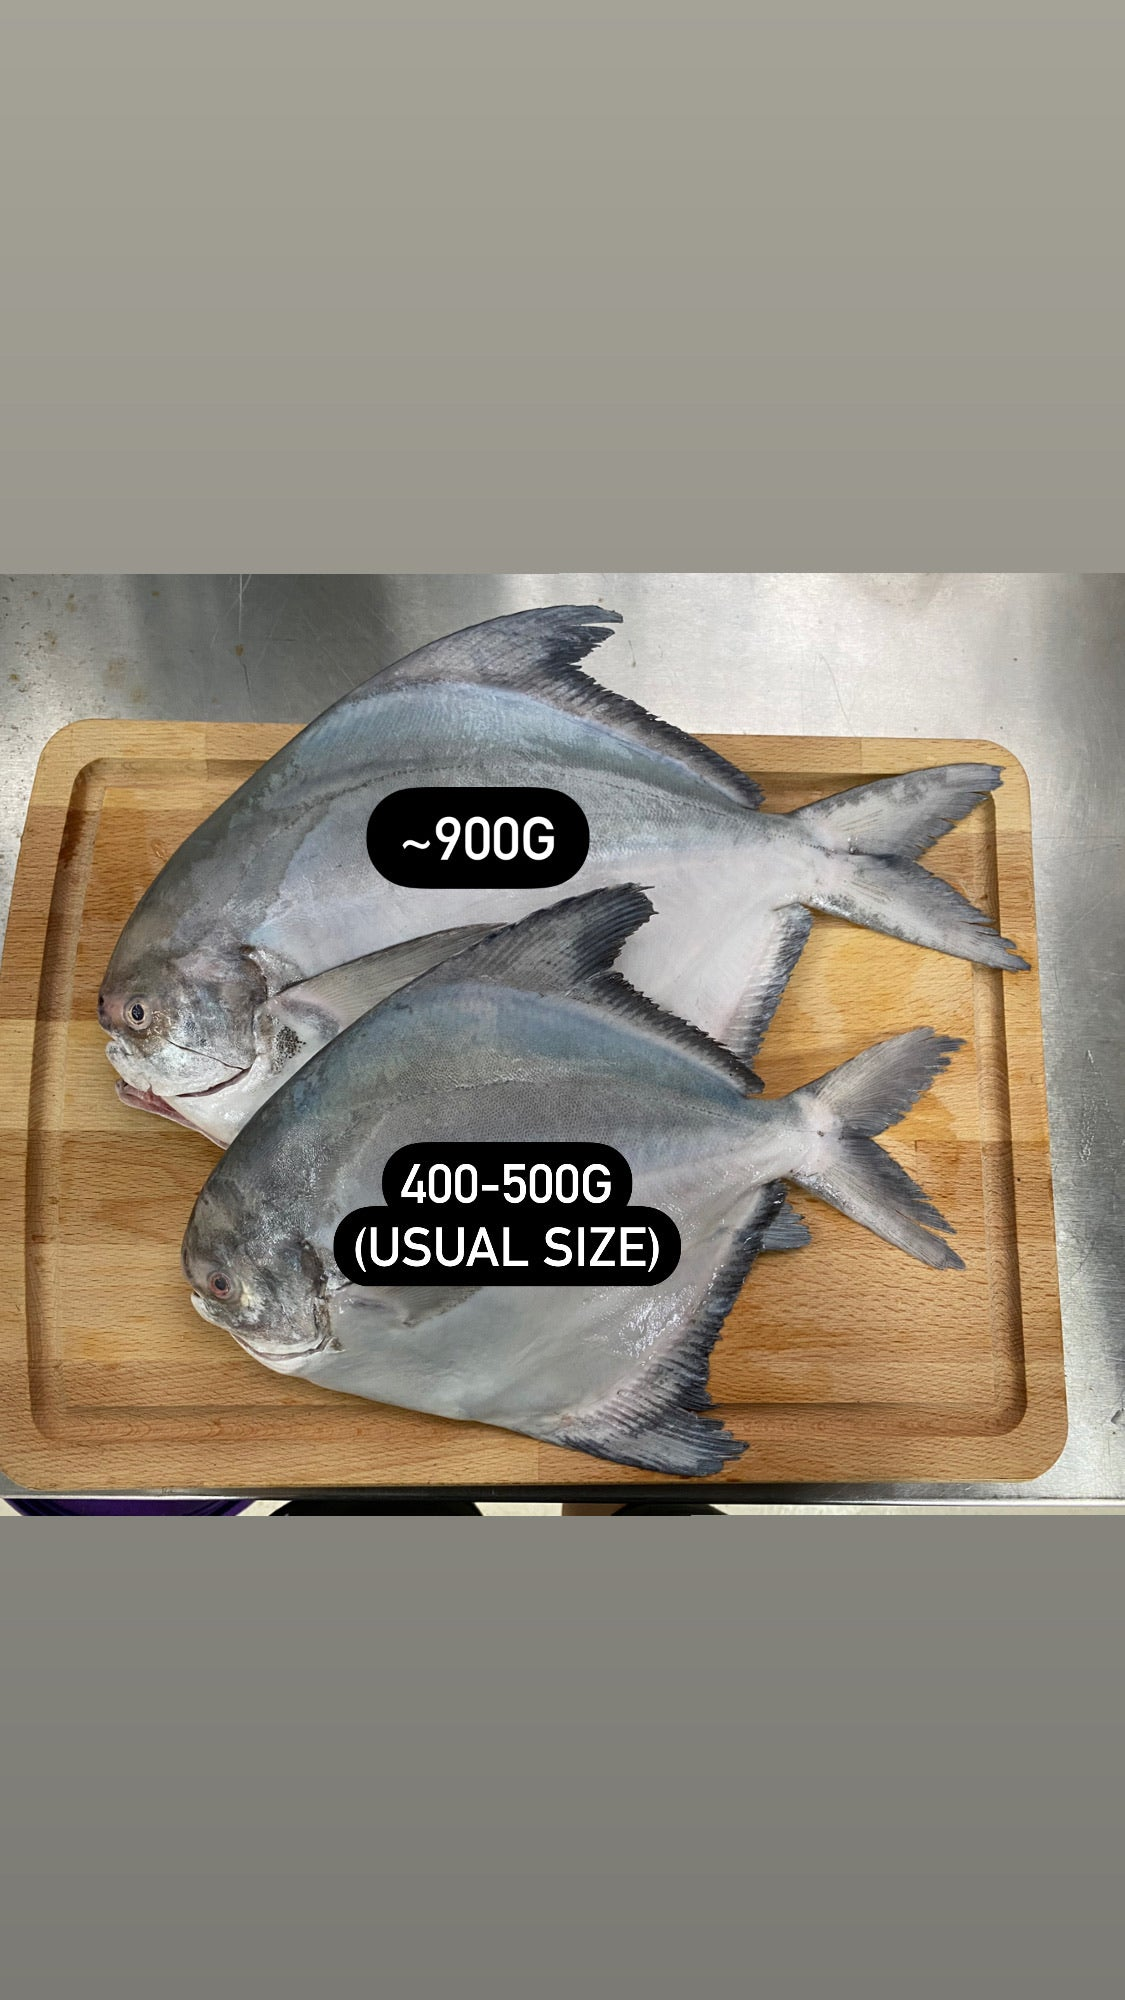 *LARGE* Chinese Pomfret (~900G)